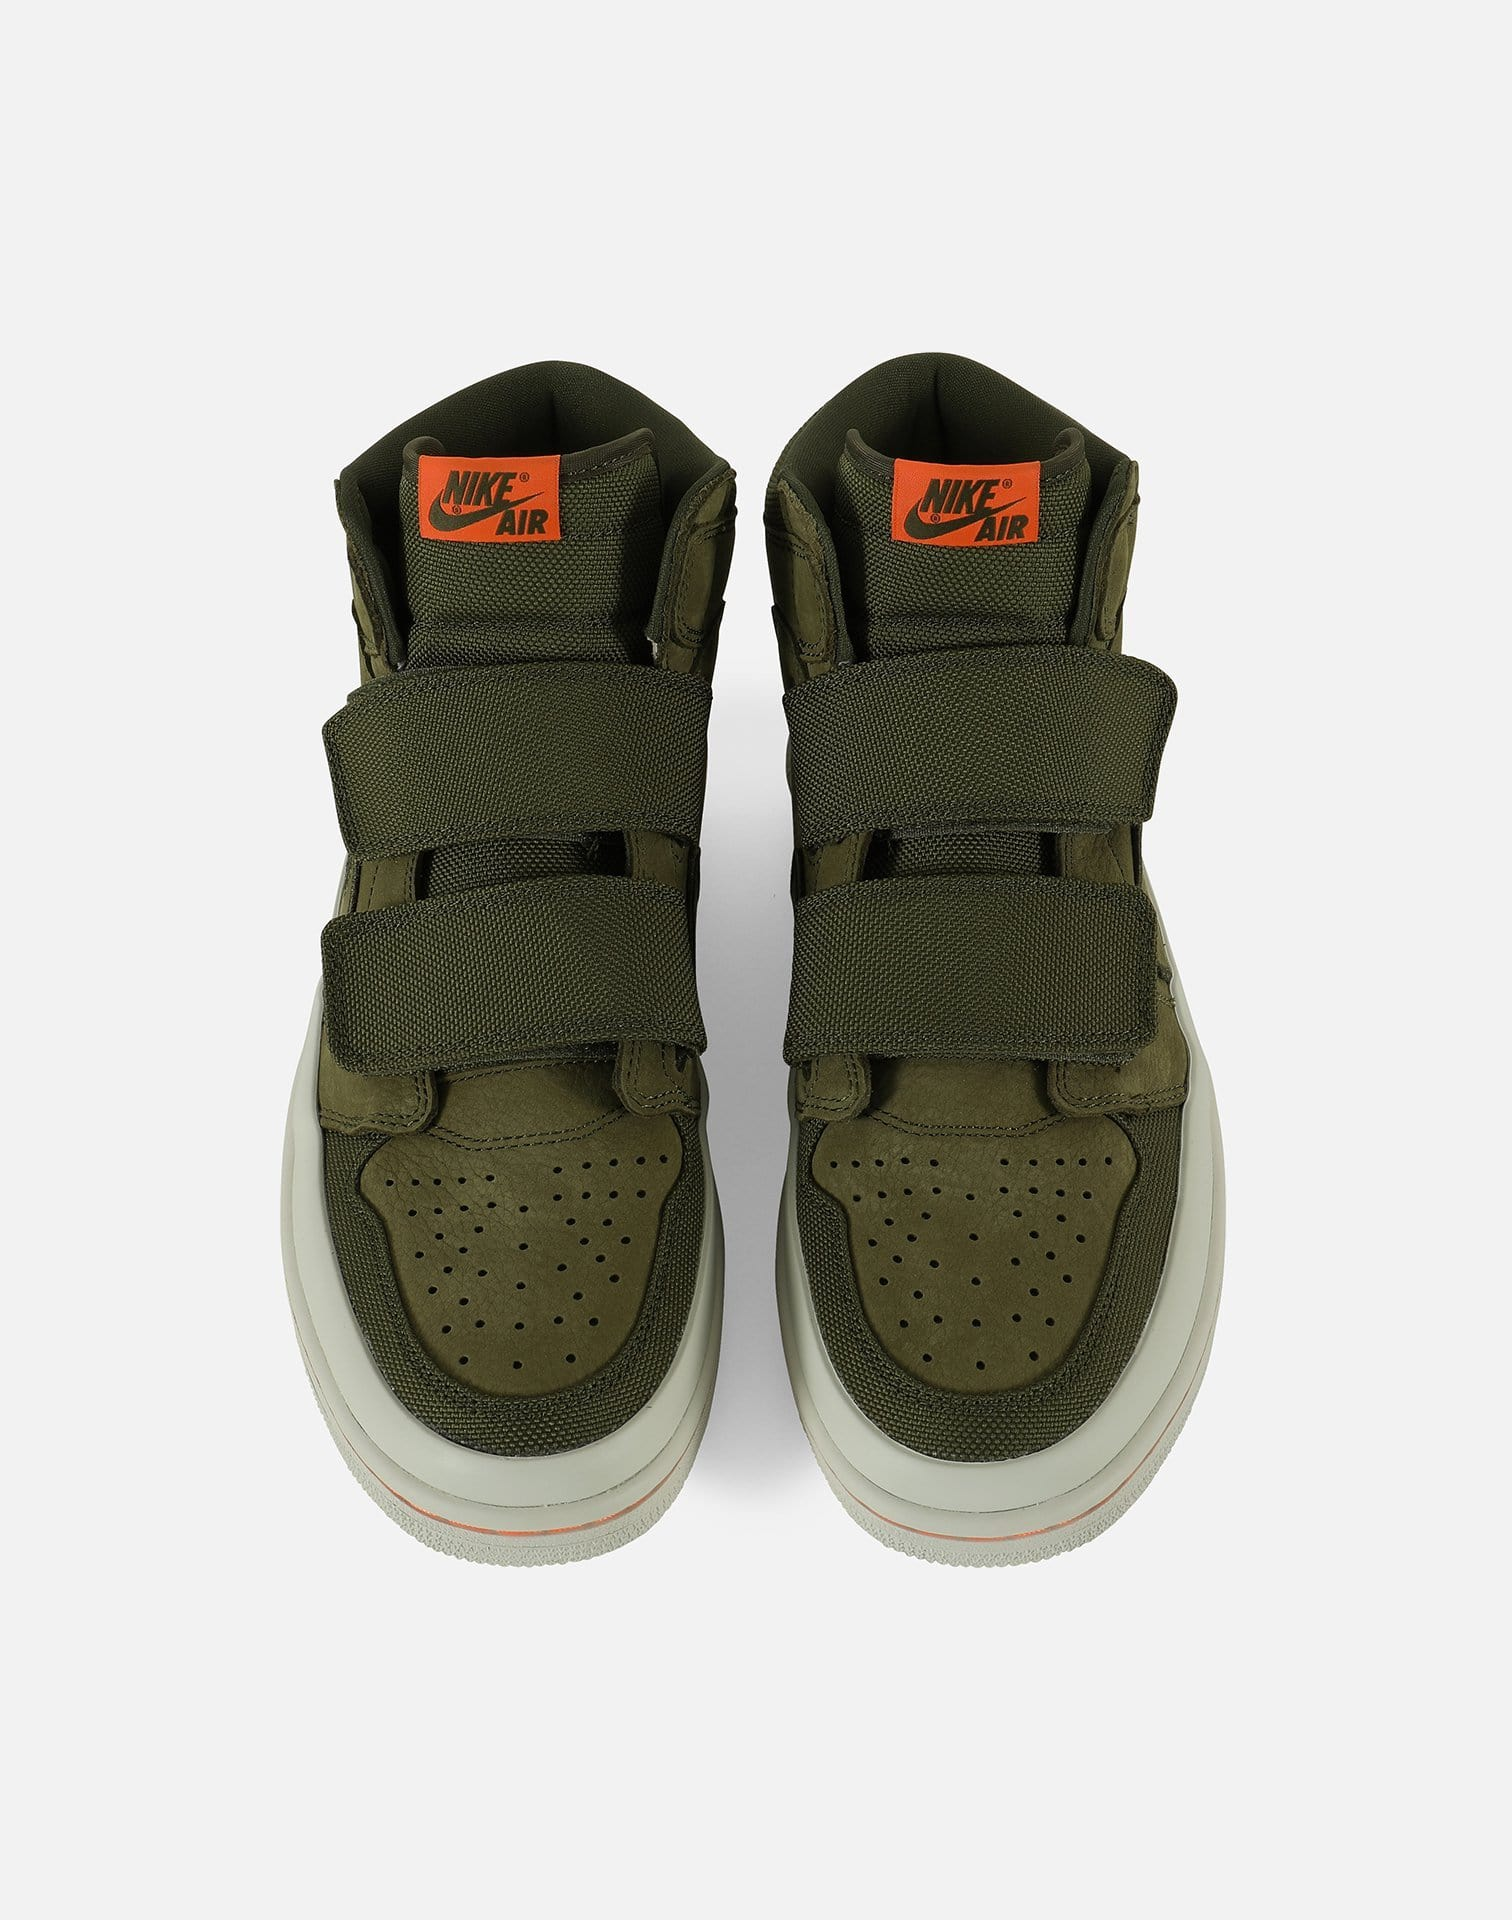 Jordan Men's Air Jordan Retro 1 High Double Strap